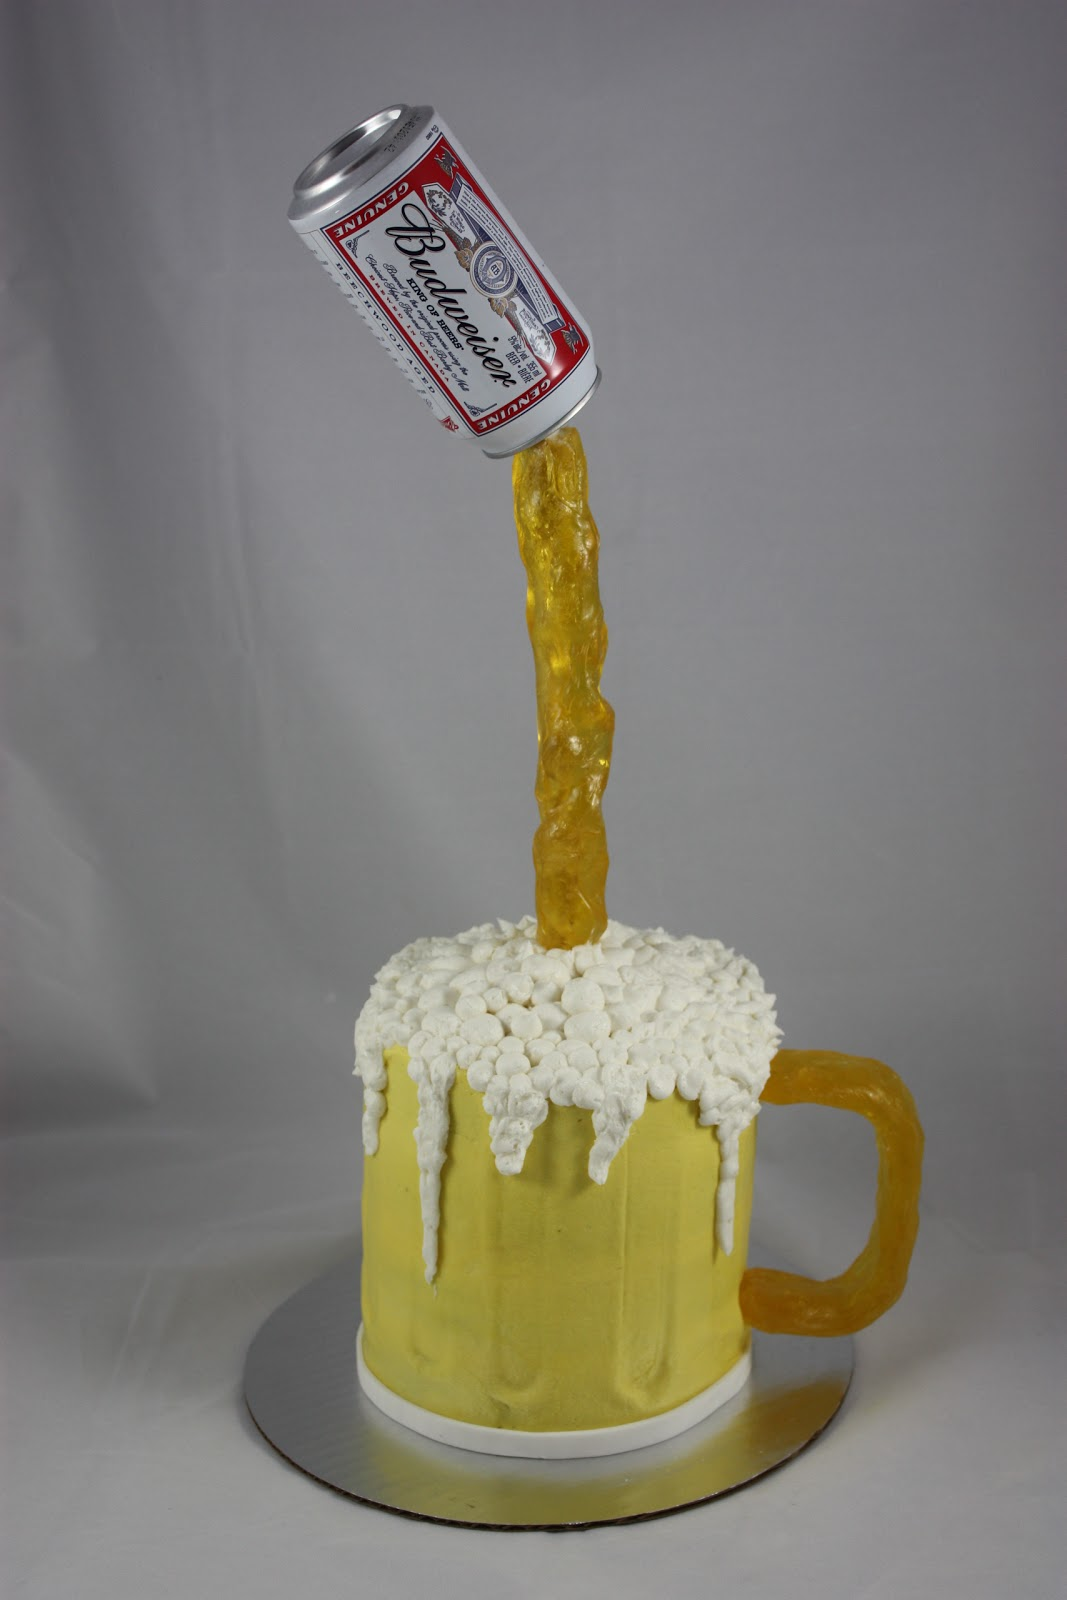 Beer Mug Cake Design : Sweet On You-Designer Cups & Cakes: Beer Mug Cake